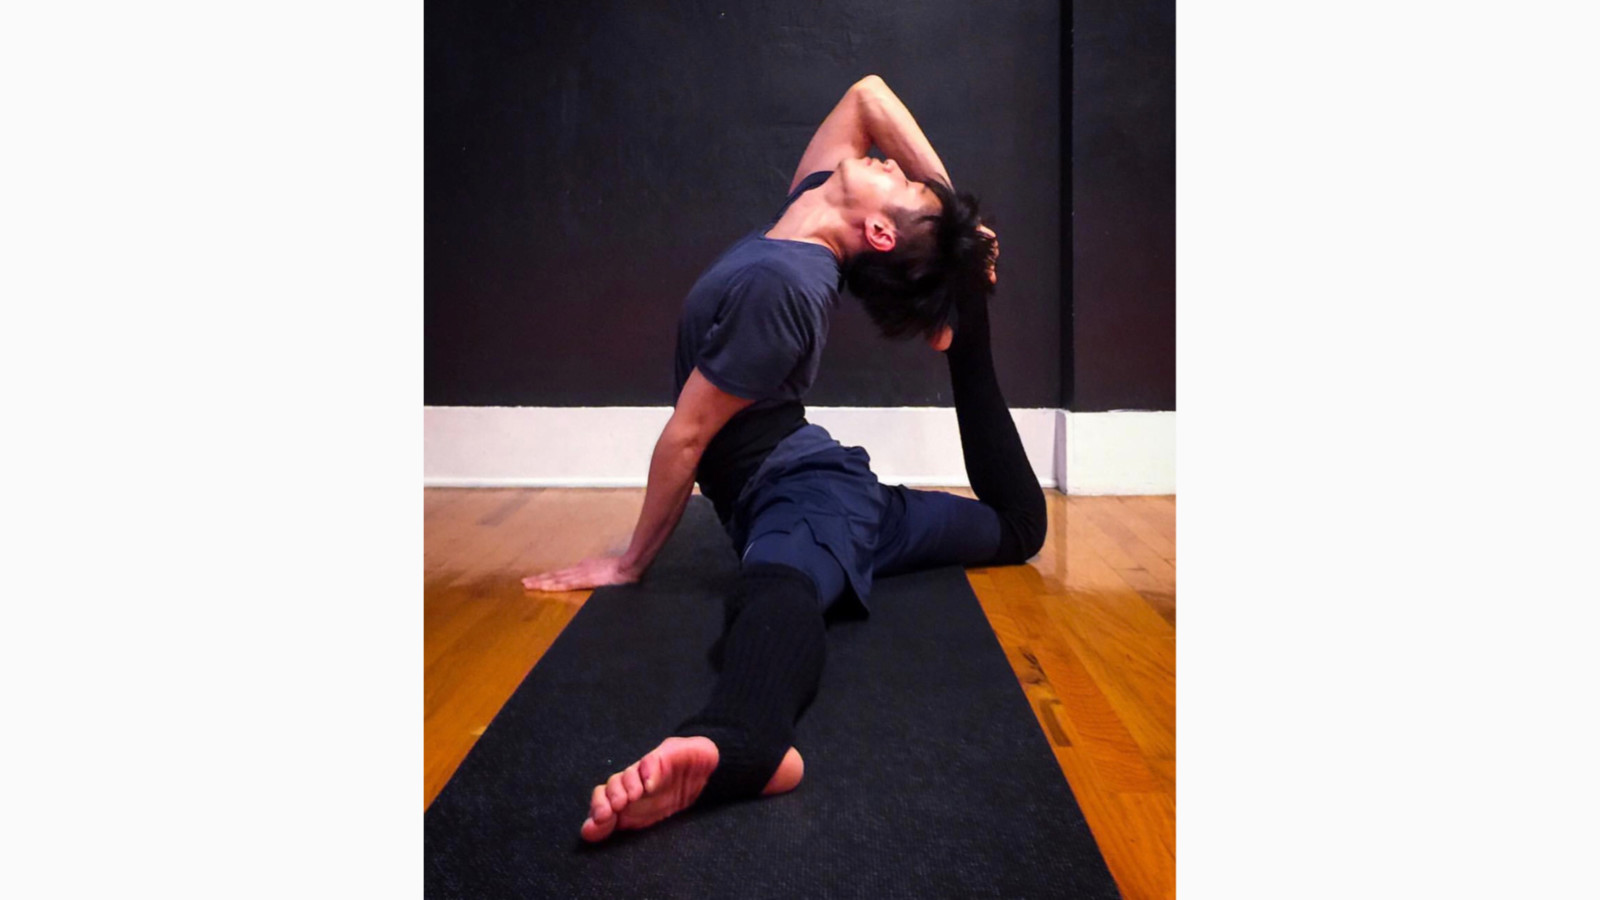 How to Get Your Best Middle Split | StretchIt – Stretching